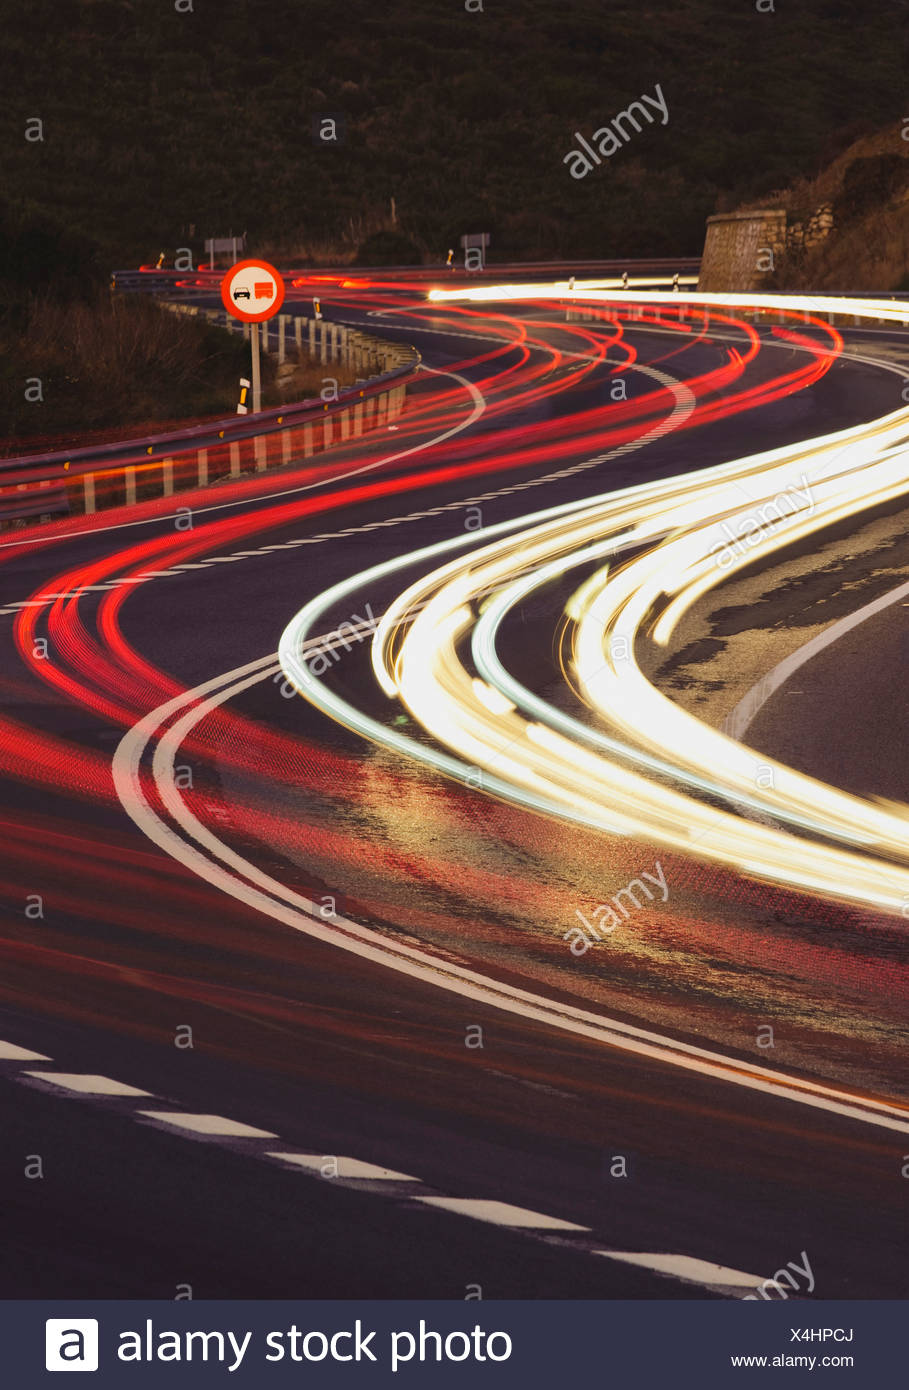 Vehicle Lights On A Road - Stock Image